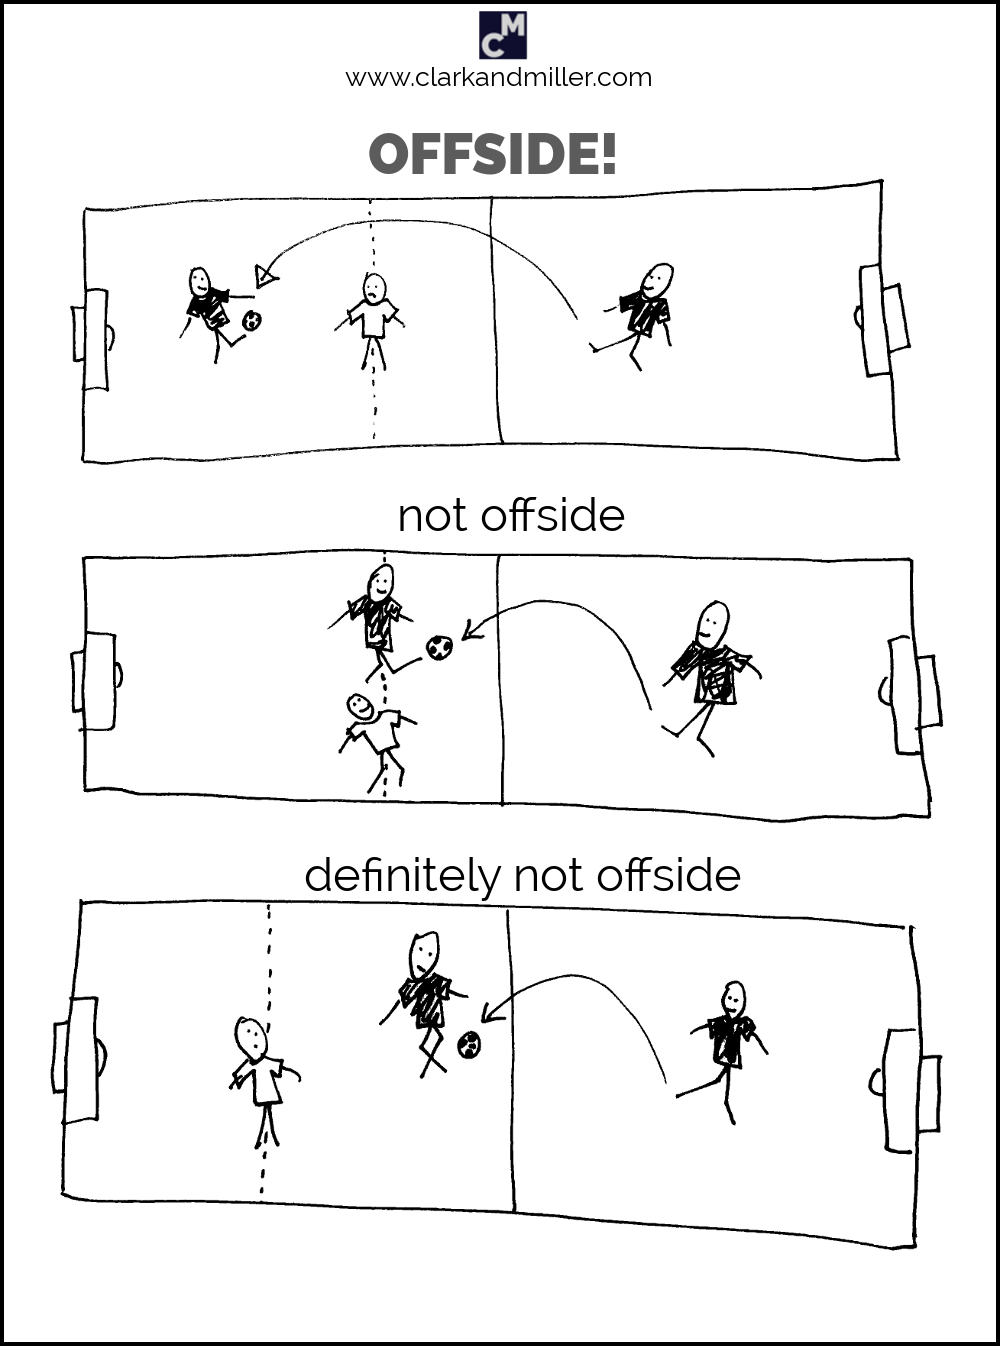 Football offside rule explanation in pictures